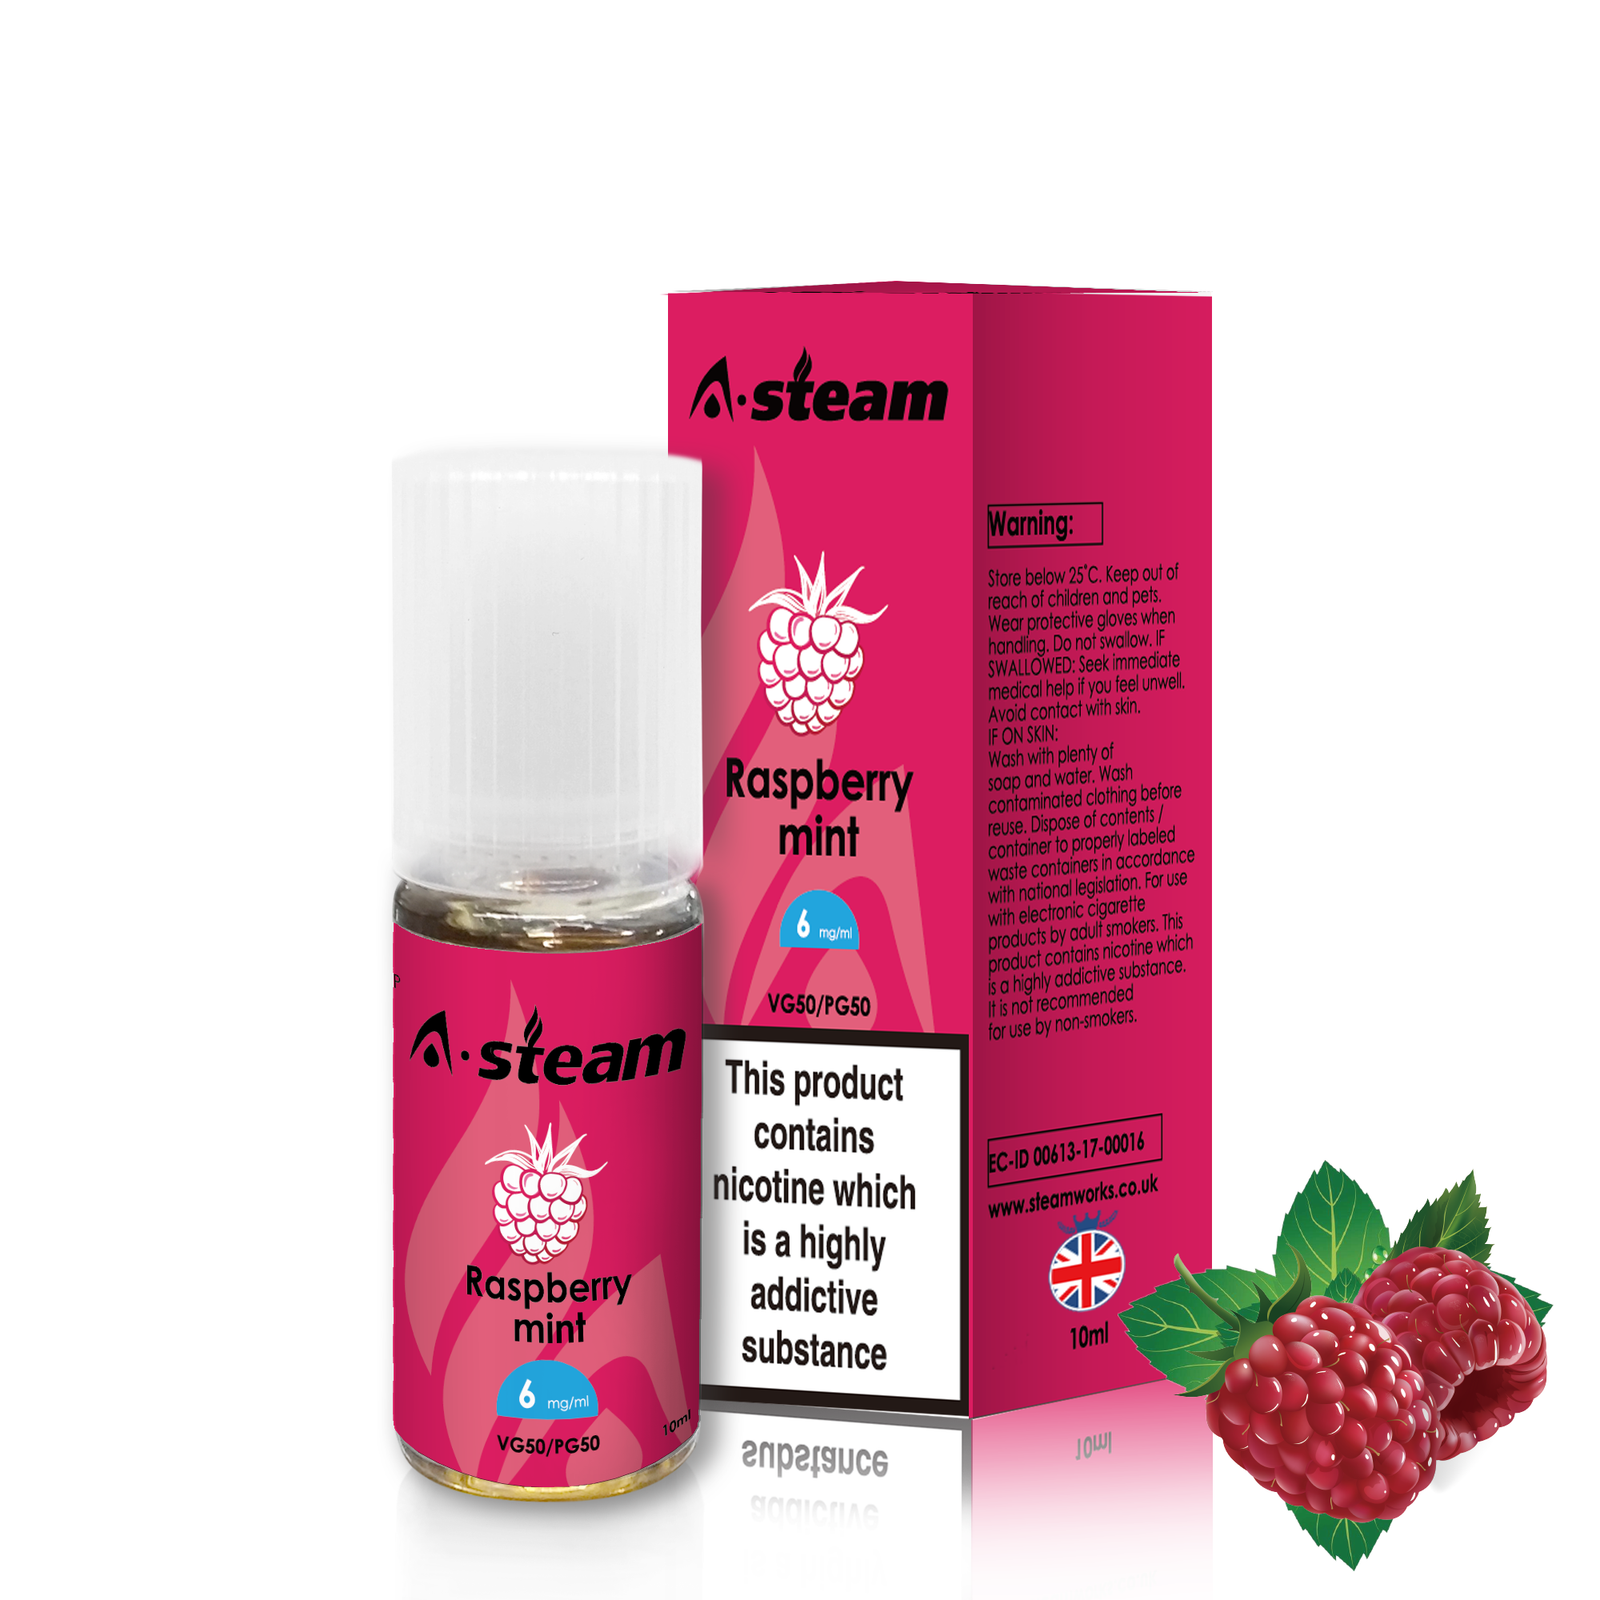 A-STEAM Raspberry Mint